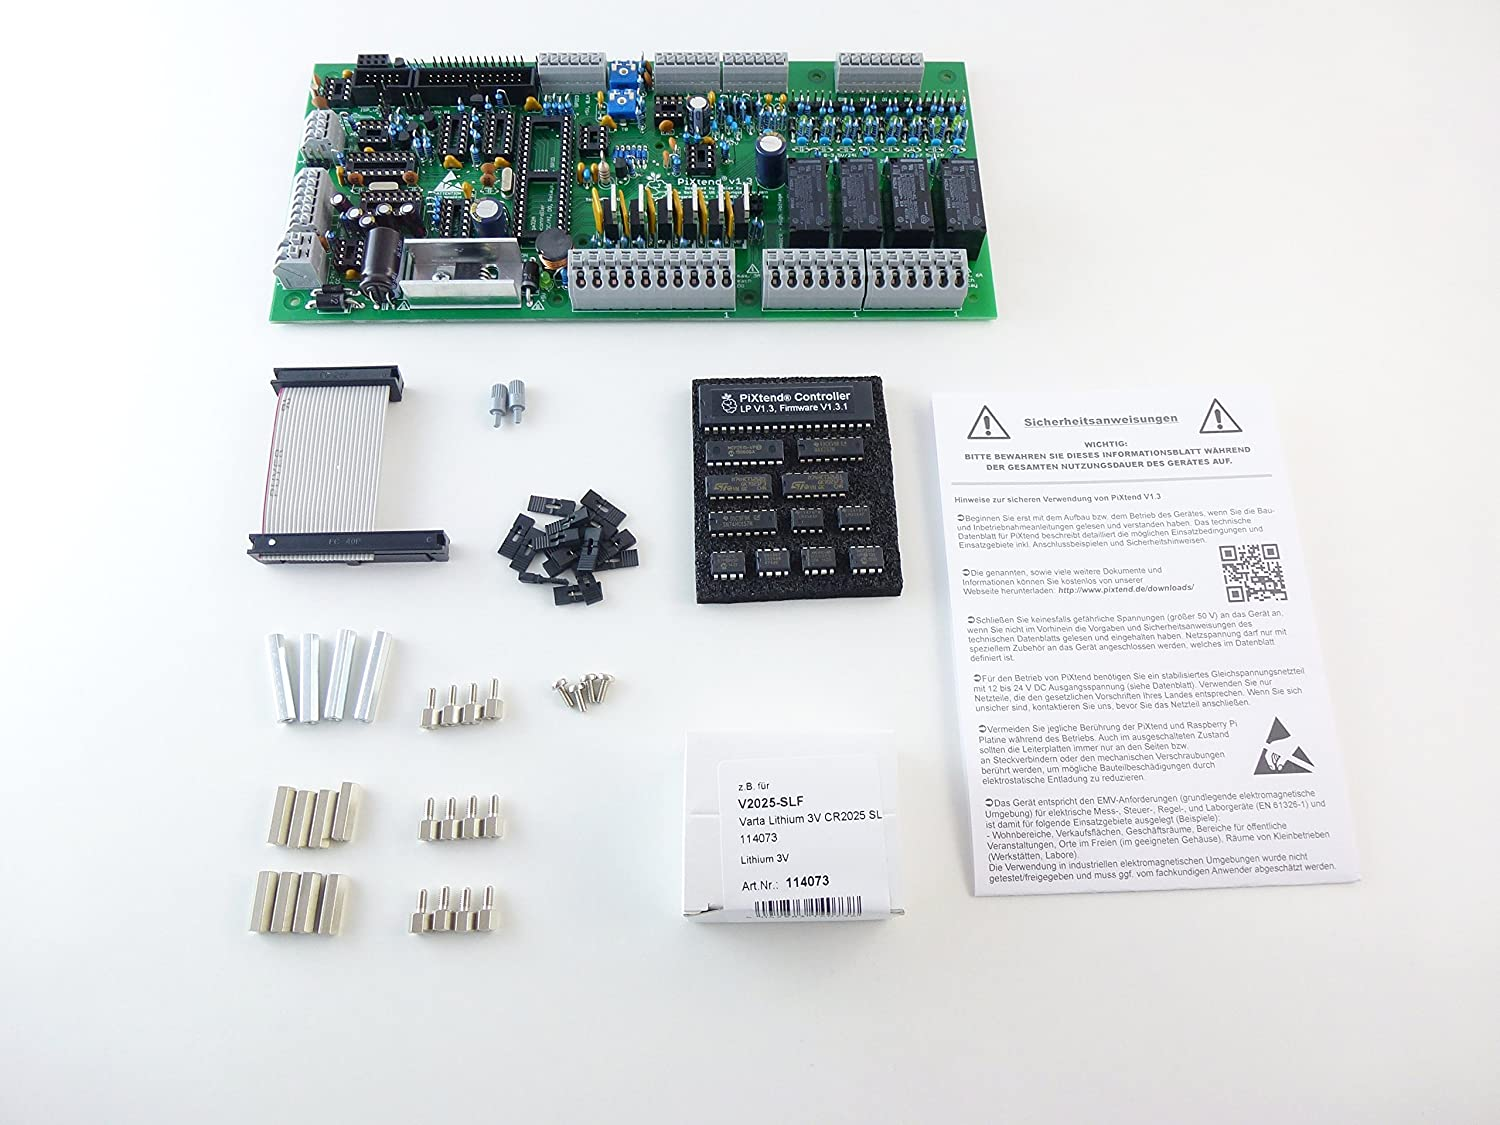 Pixtend V1 3 Artc SPS/PLC/Control Expansion for Raspberry Pi: Amazon